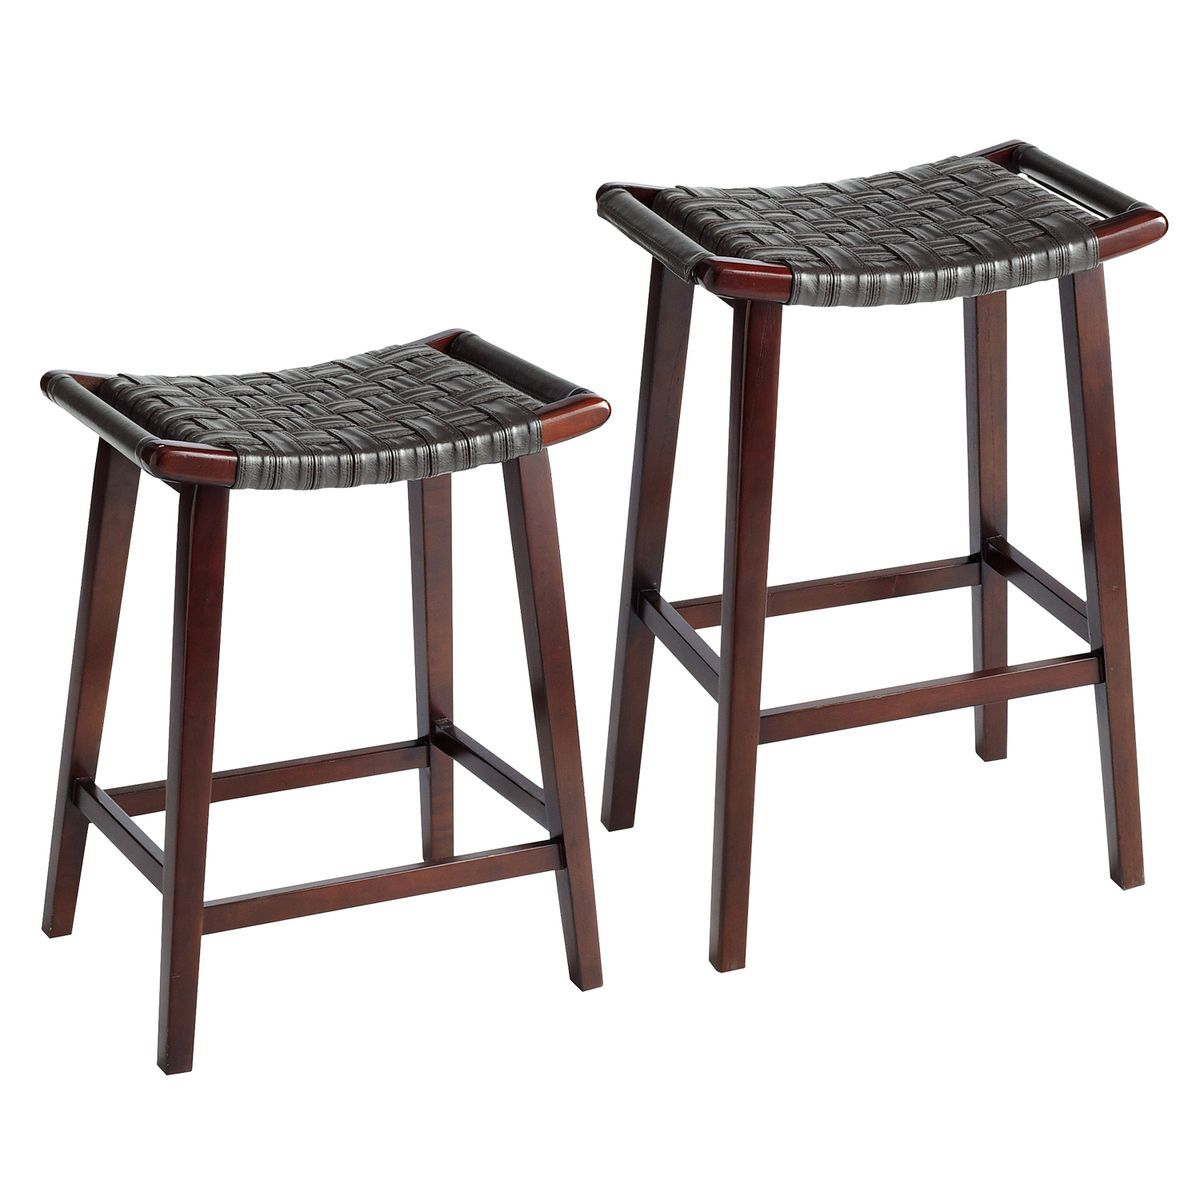 Terrific Keating Backless Bar Counter Stools Brown Pier 1 Gmtry Best Dining Table And Chair Ideas Images Gmtryco